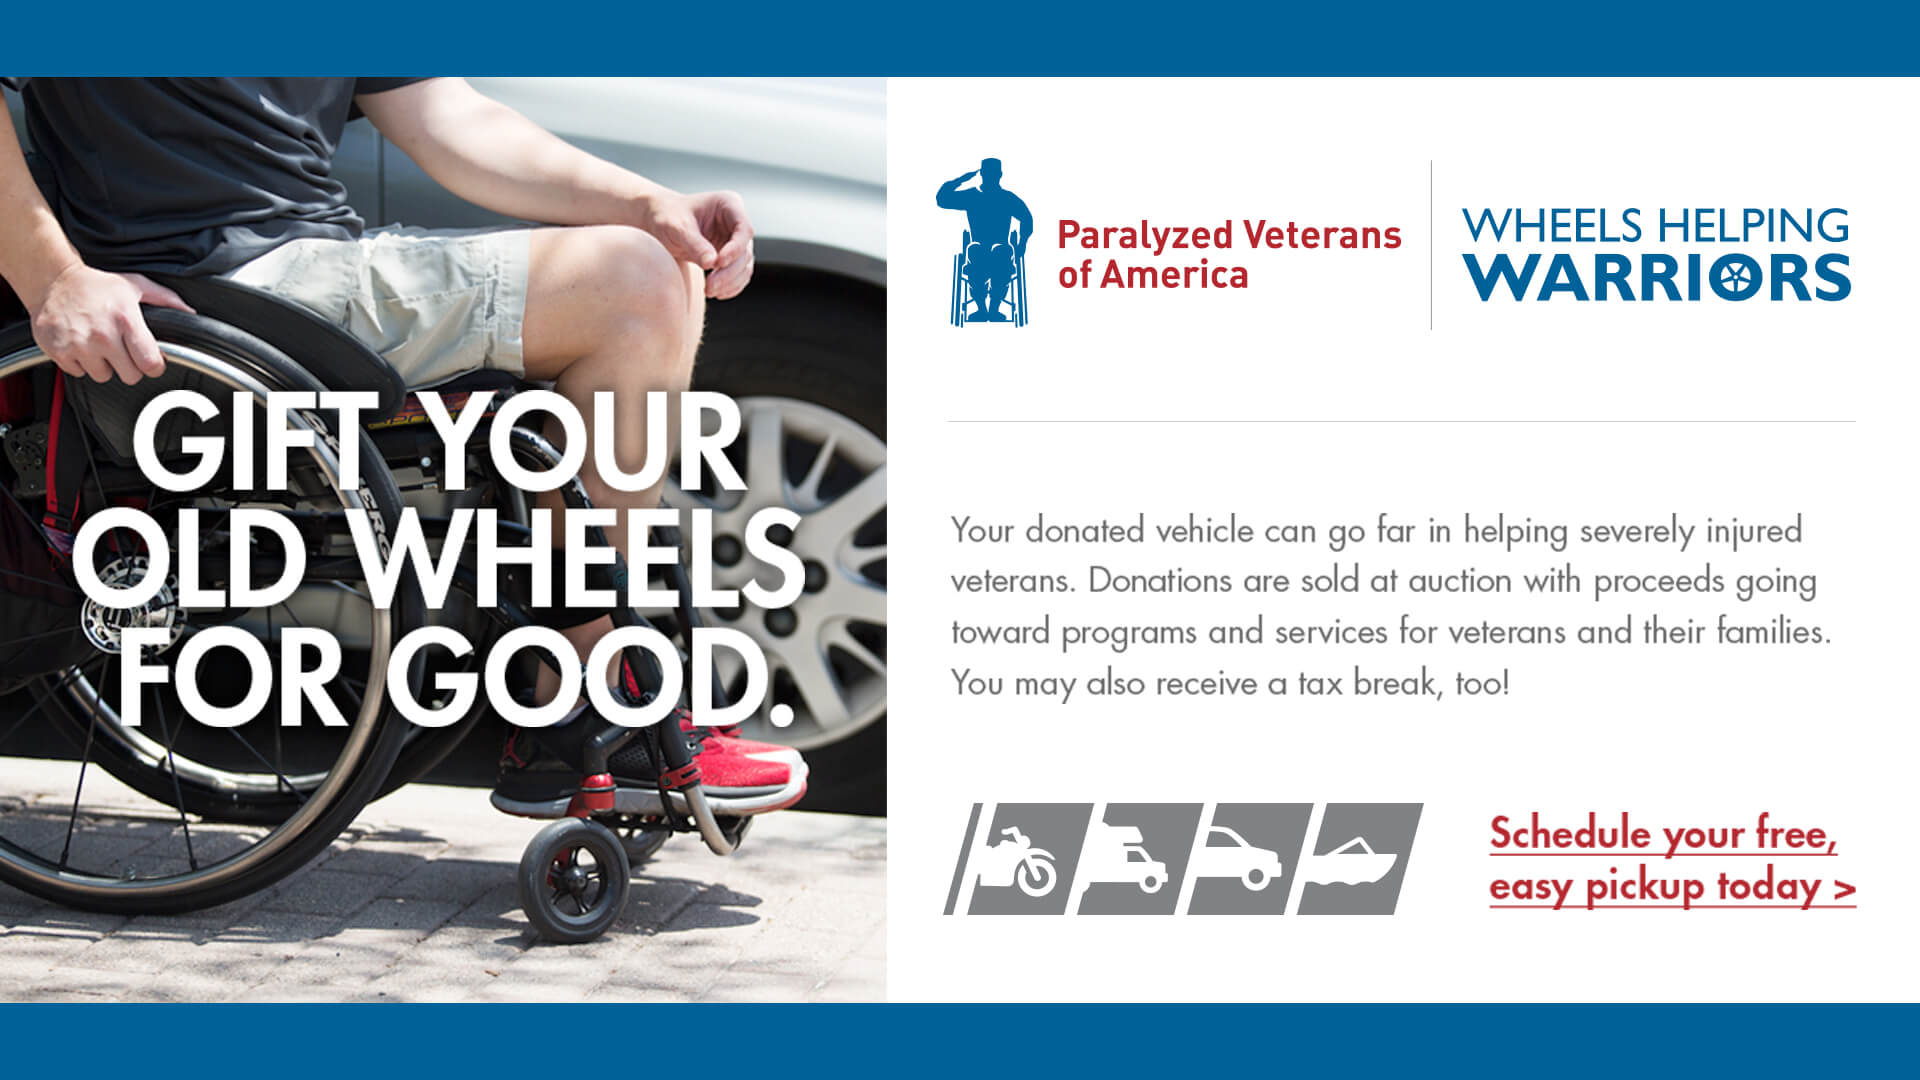 Wheels Helping Warriors Vehicle Donation Program. Click the image below for more information.